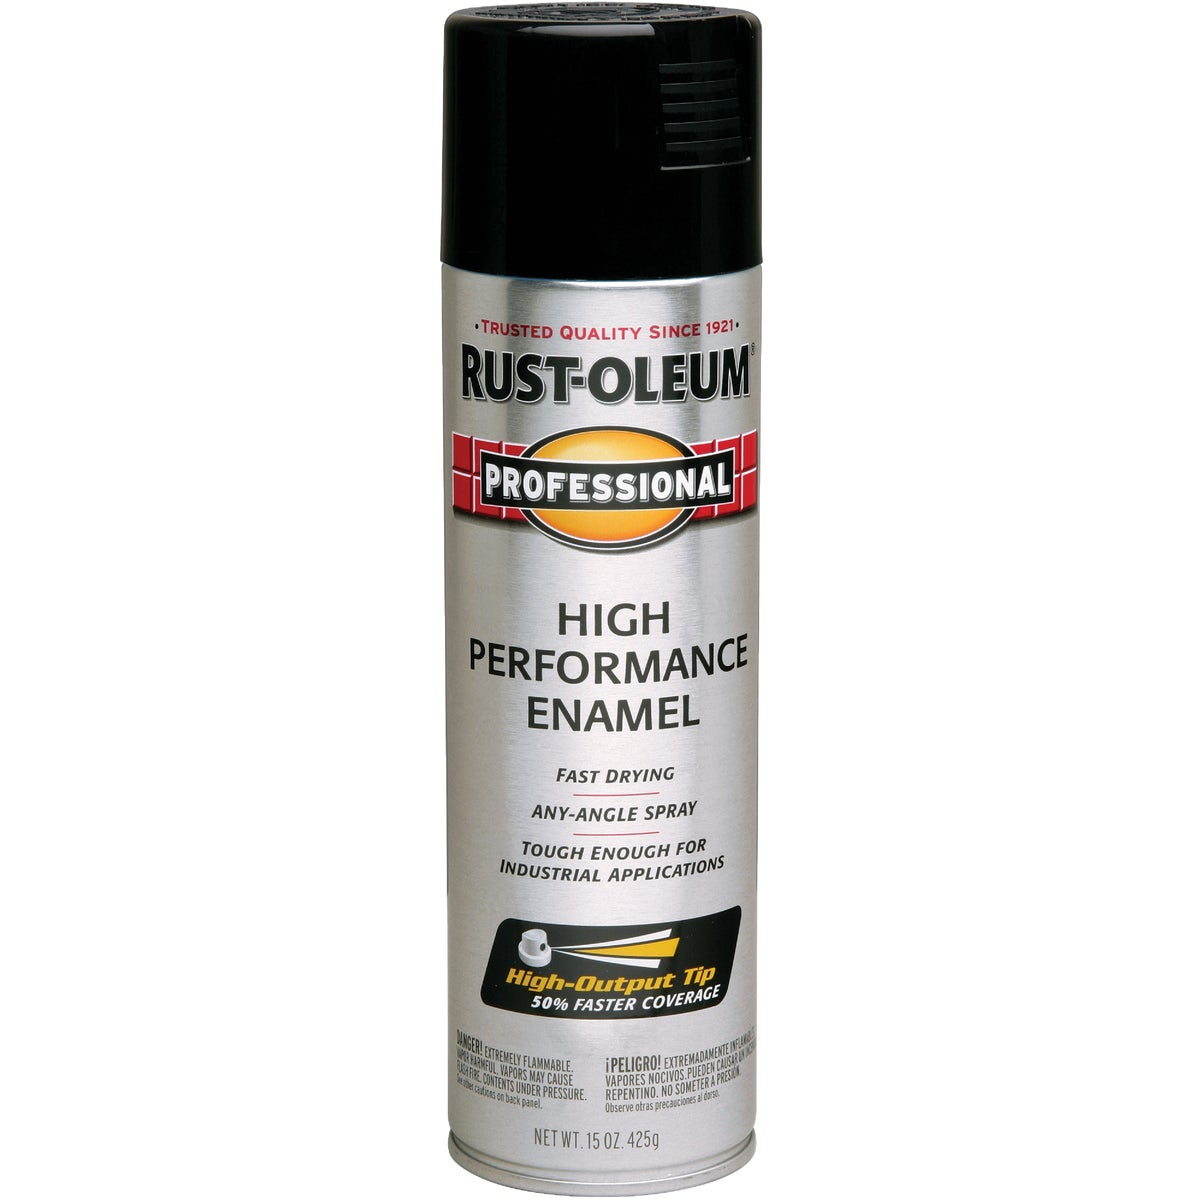 BLACK PRO SPRAY PAINT - 7579-838 by Rustoleum